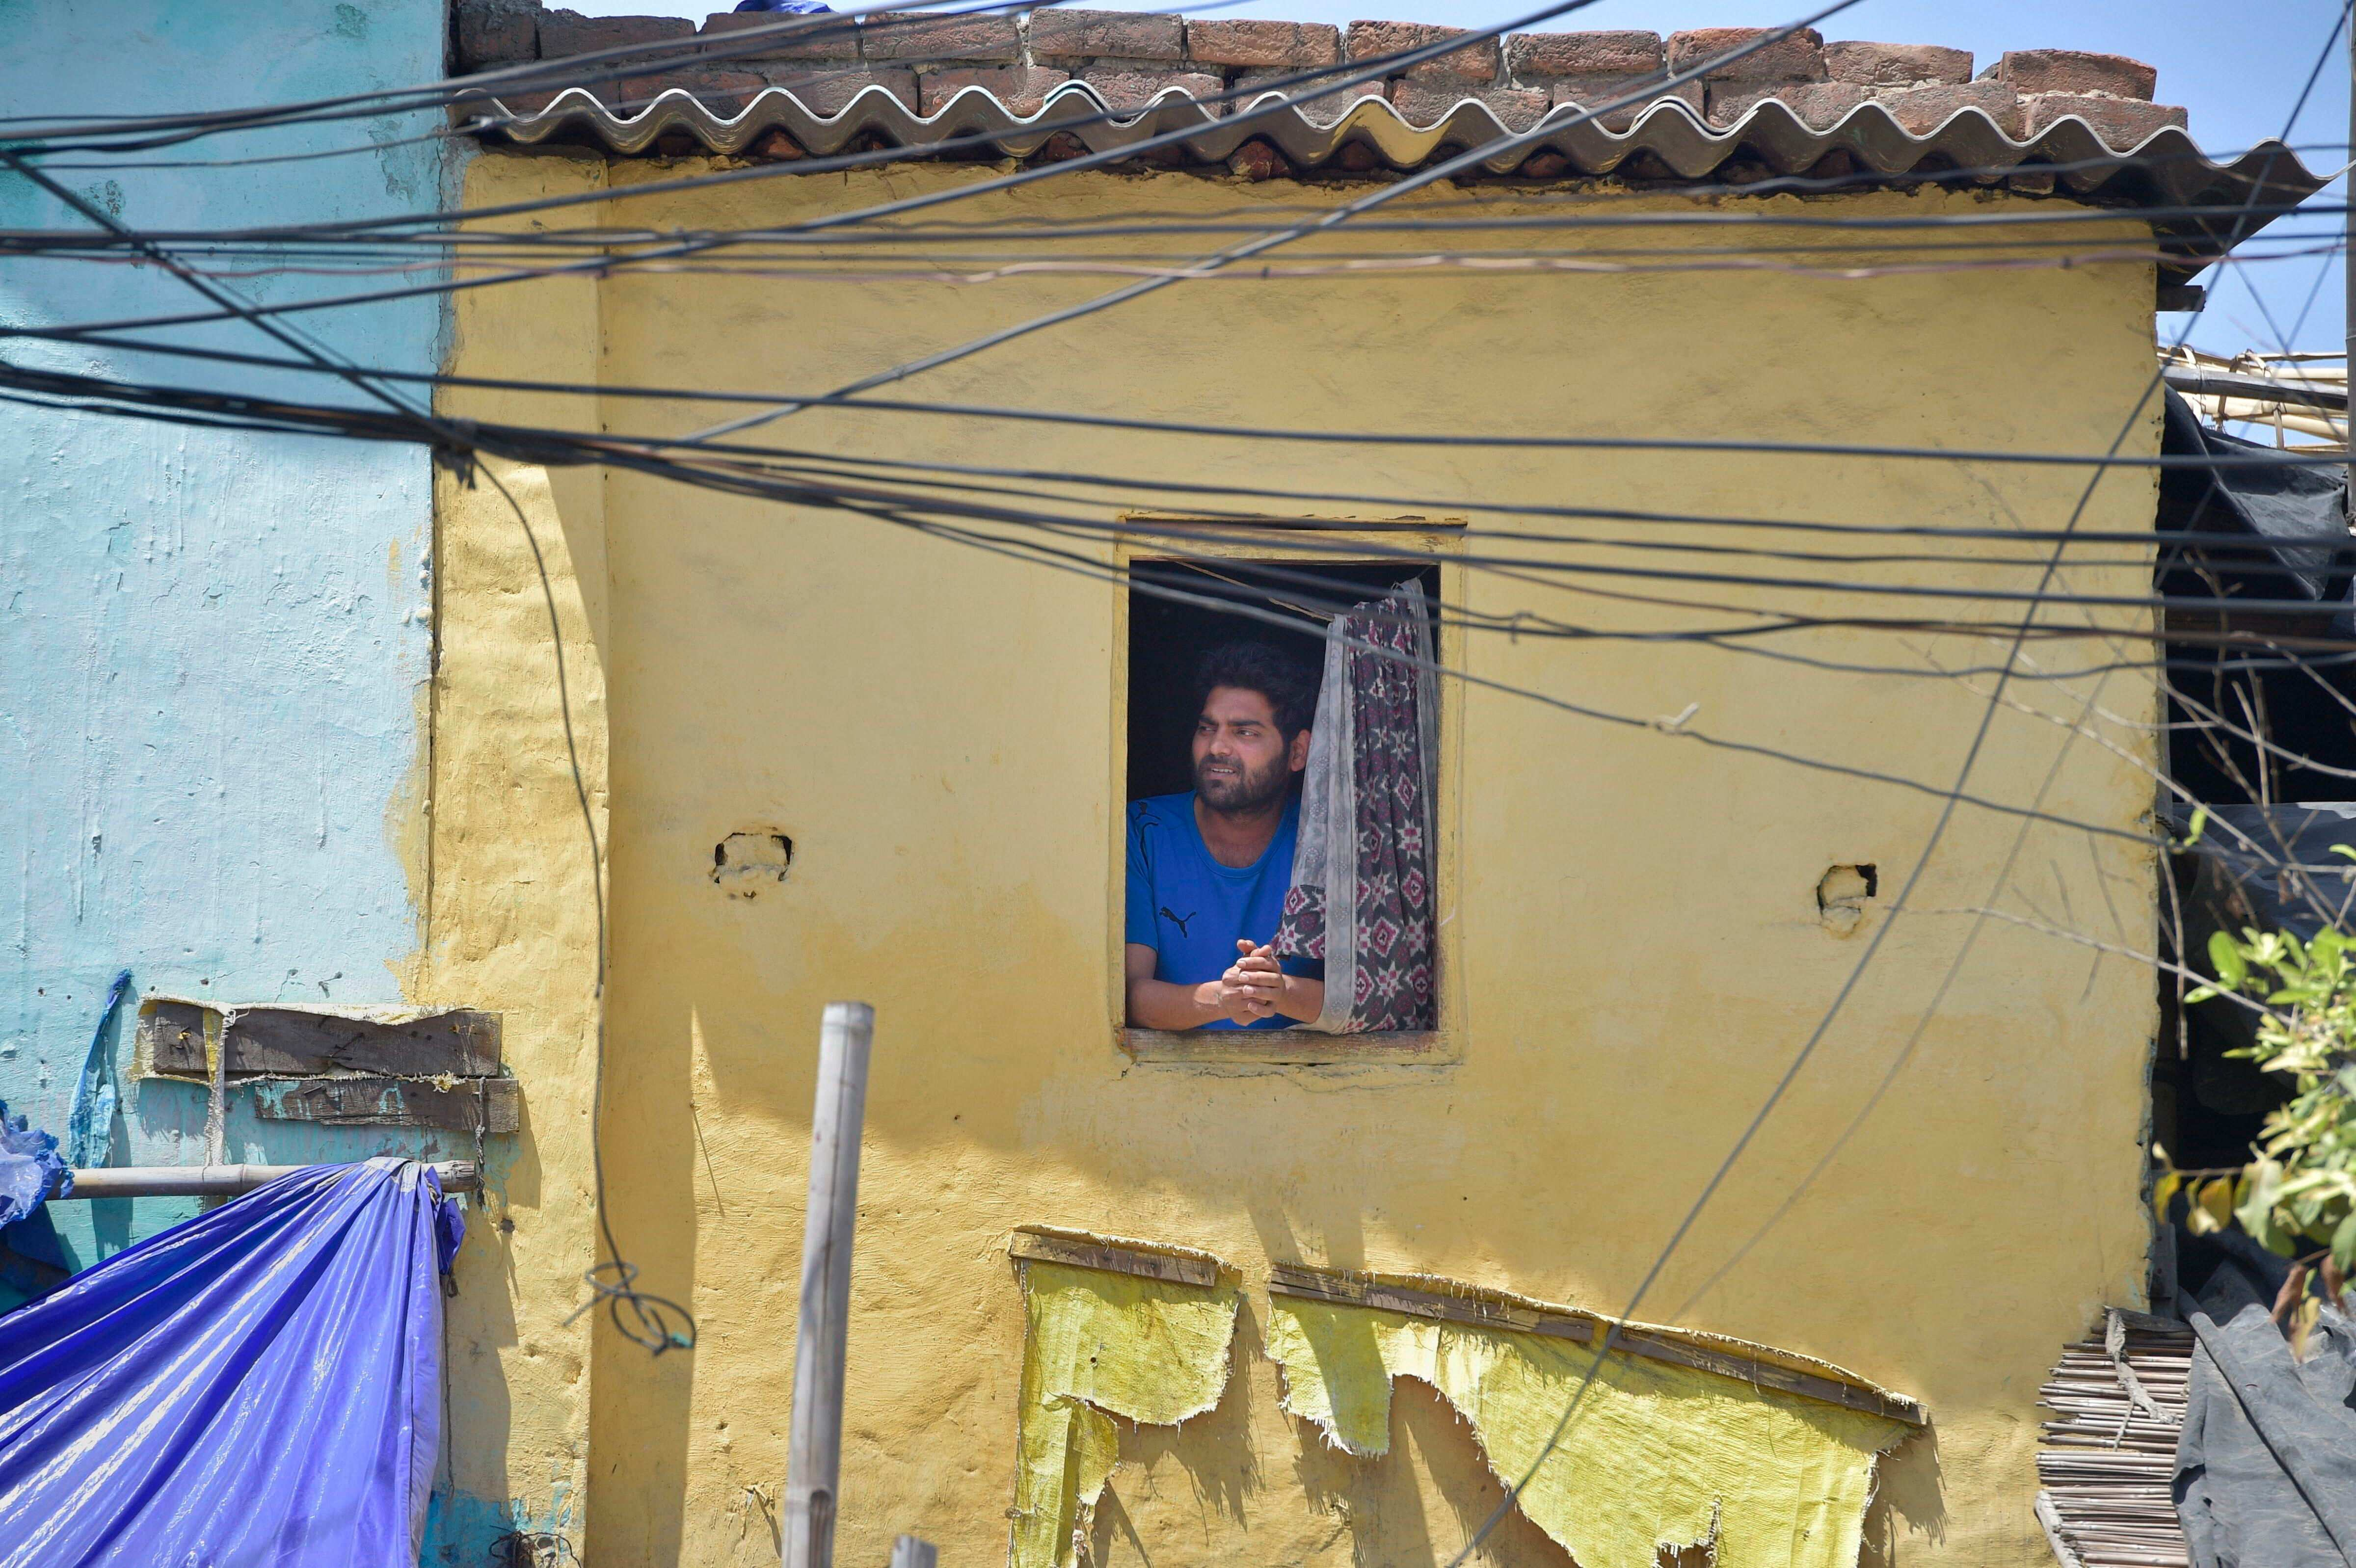 A man looking out the window of his slum during a rural blockade to stop the spread of the coronavirus, in Sek-8 in Neud.